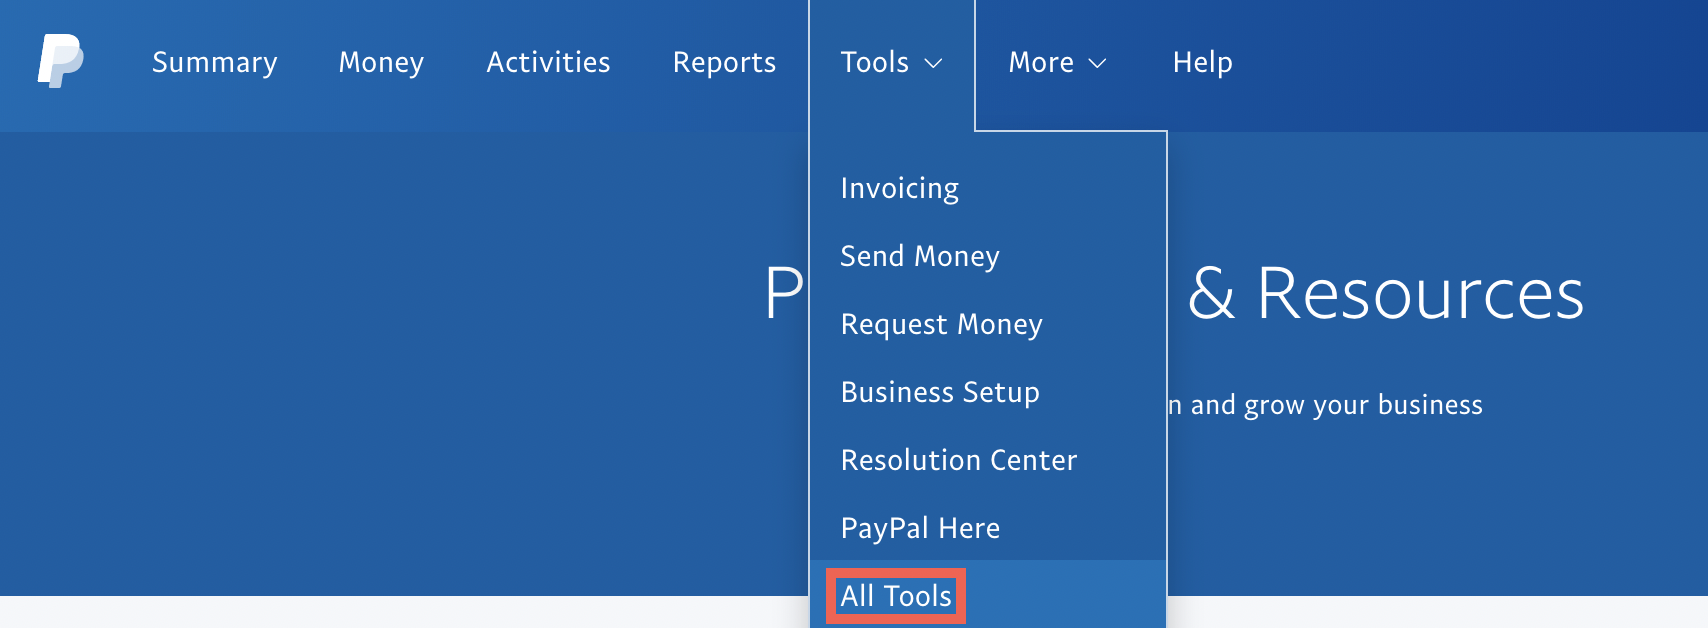 PayPal all tools.